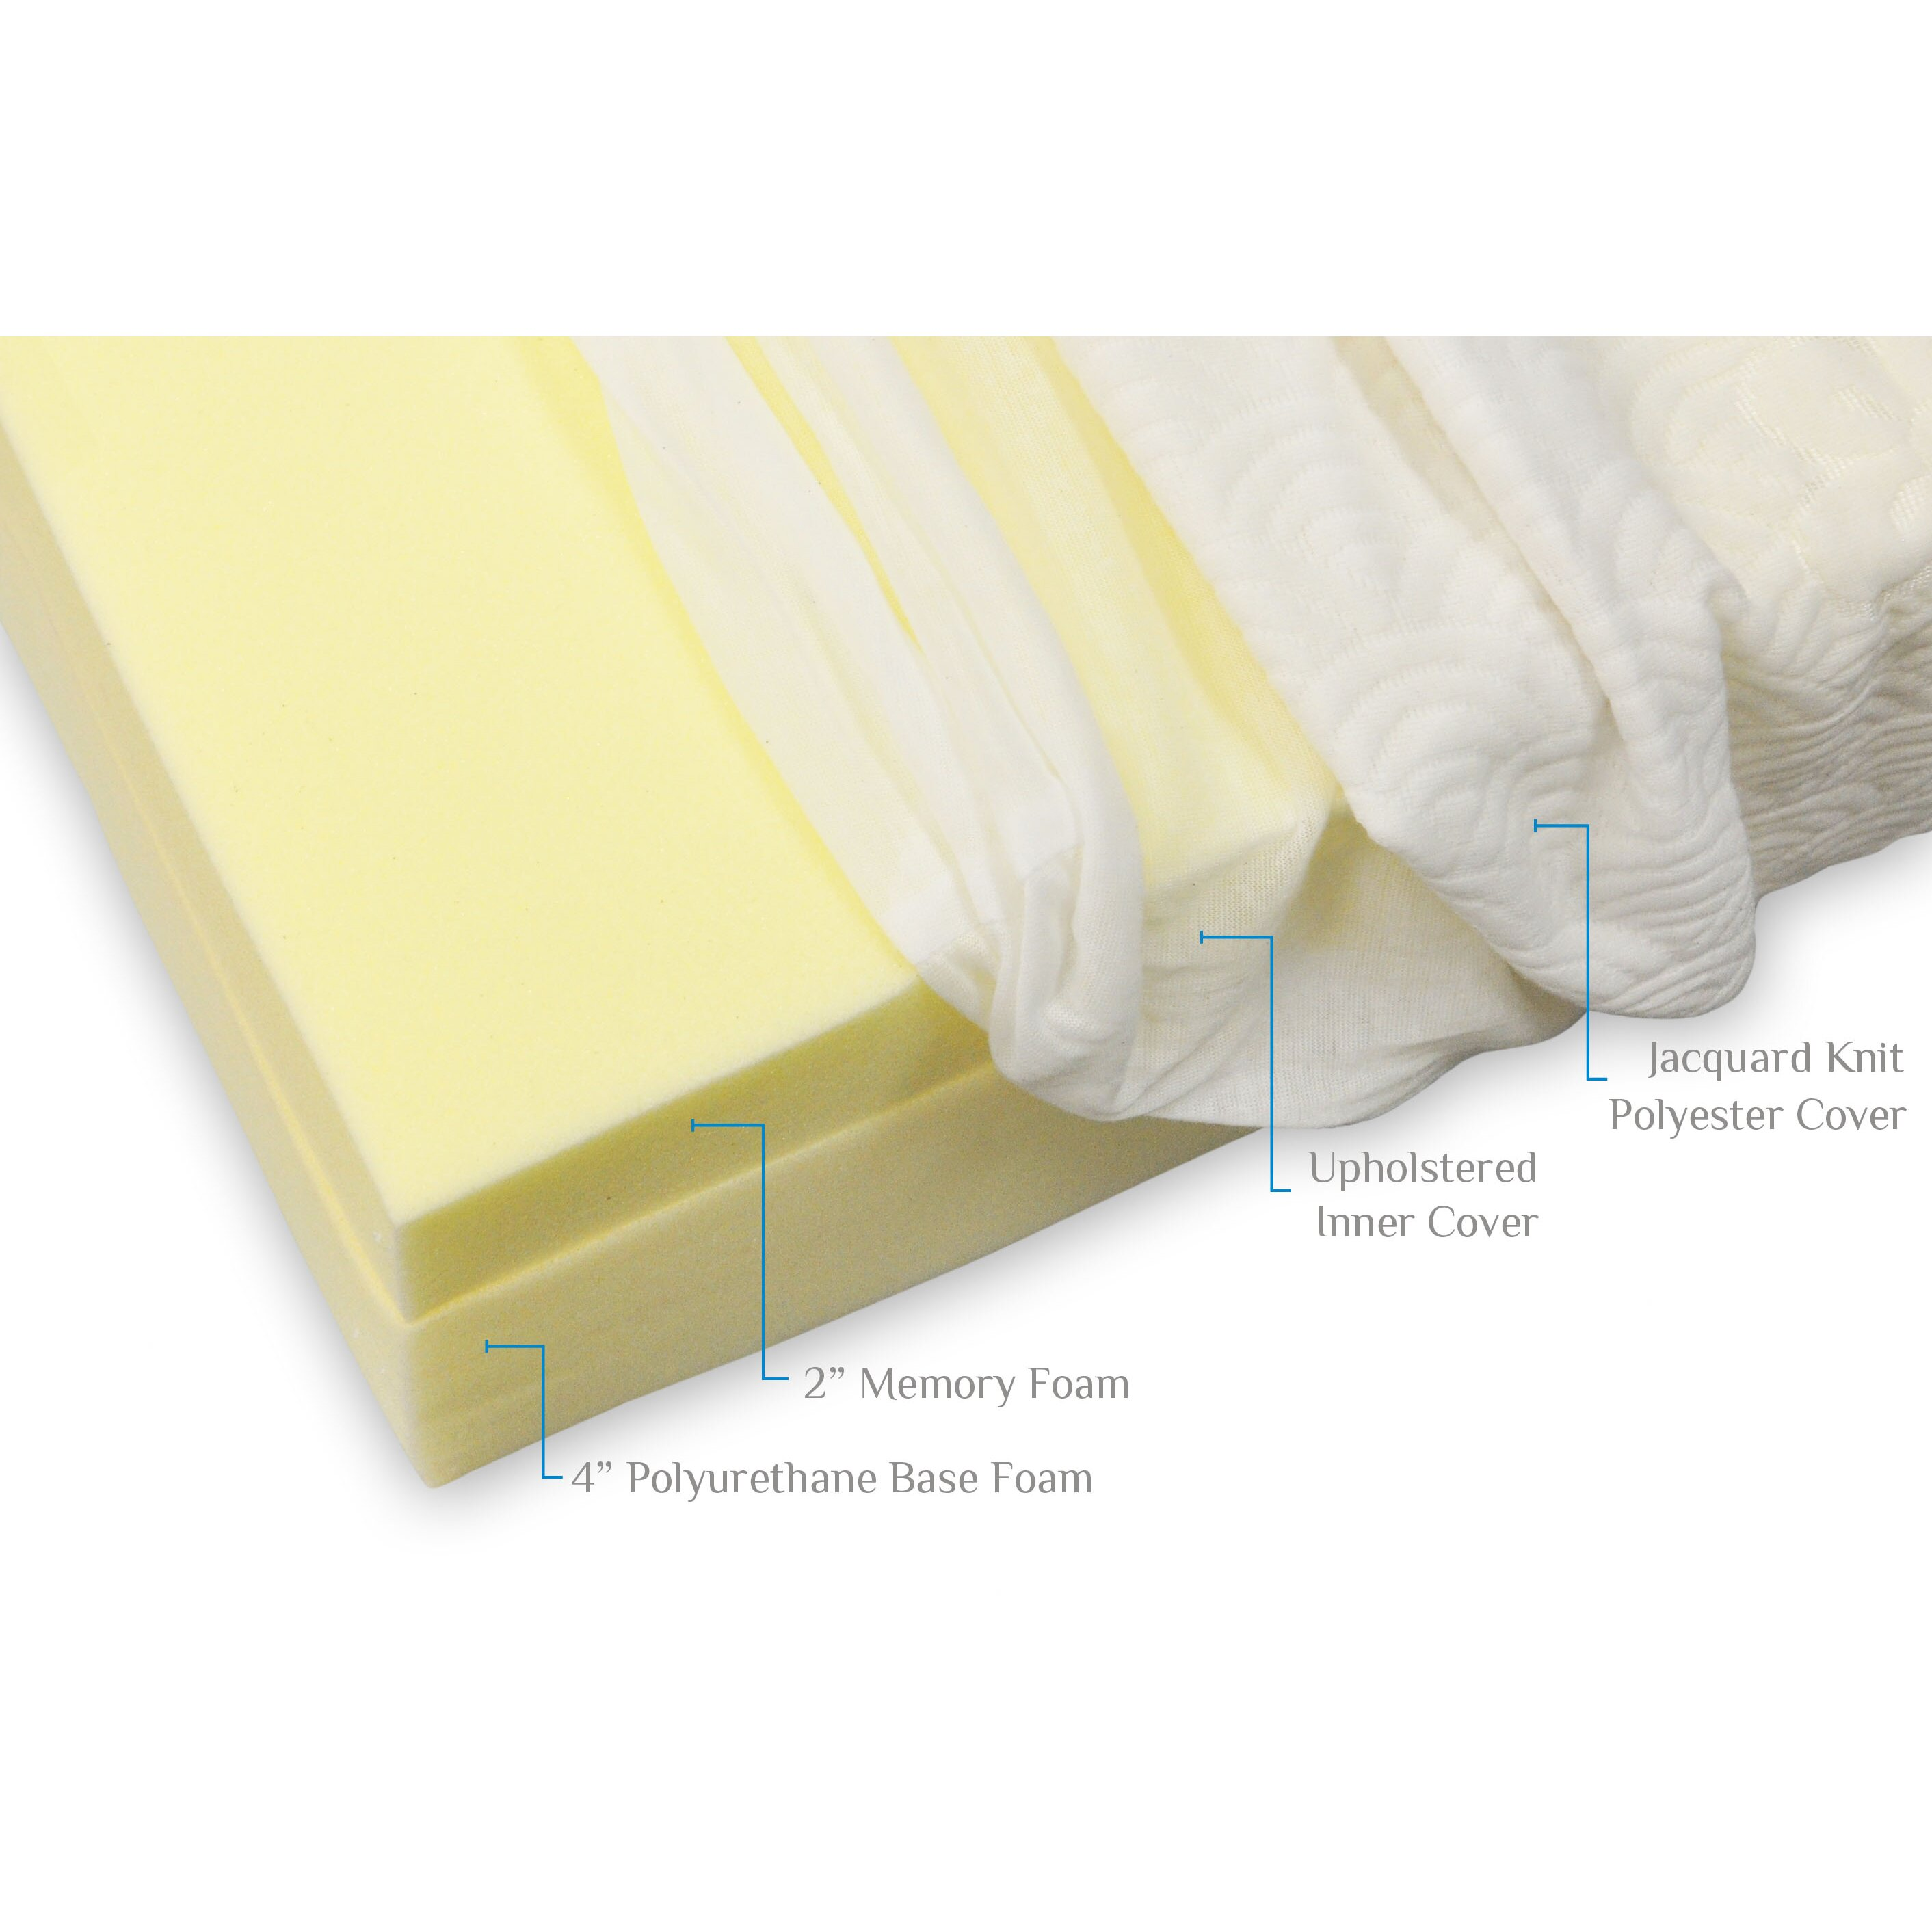 Pragma Bed Memory Foam Mattress